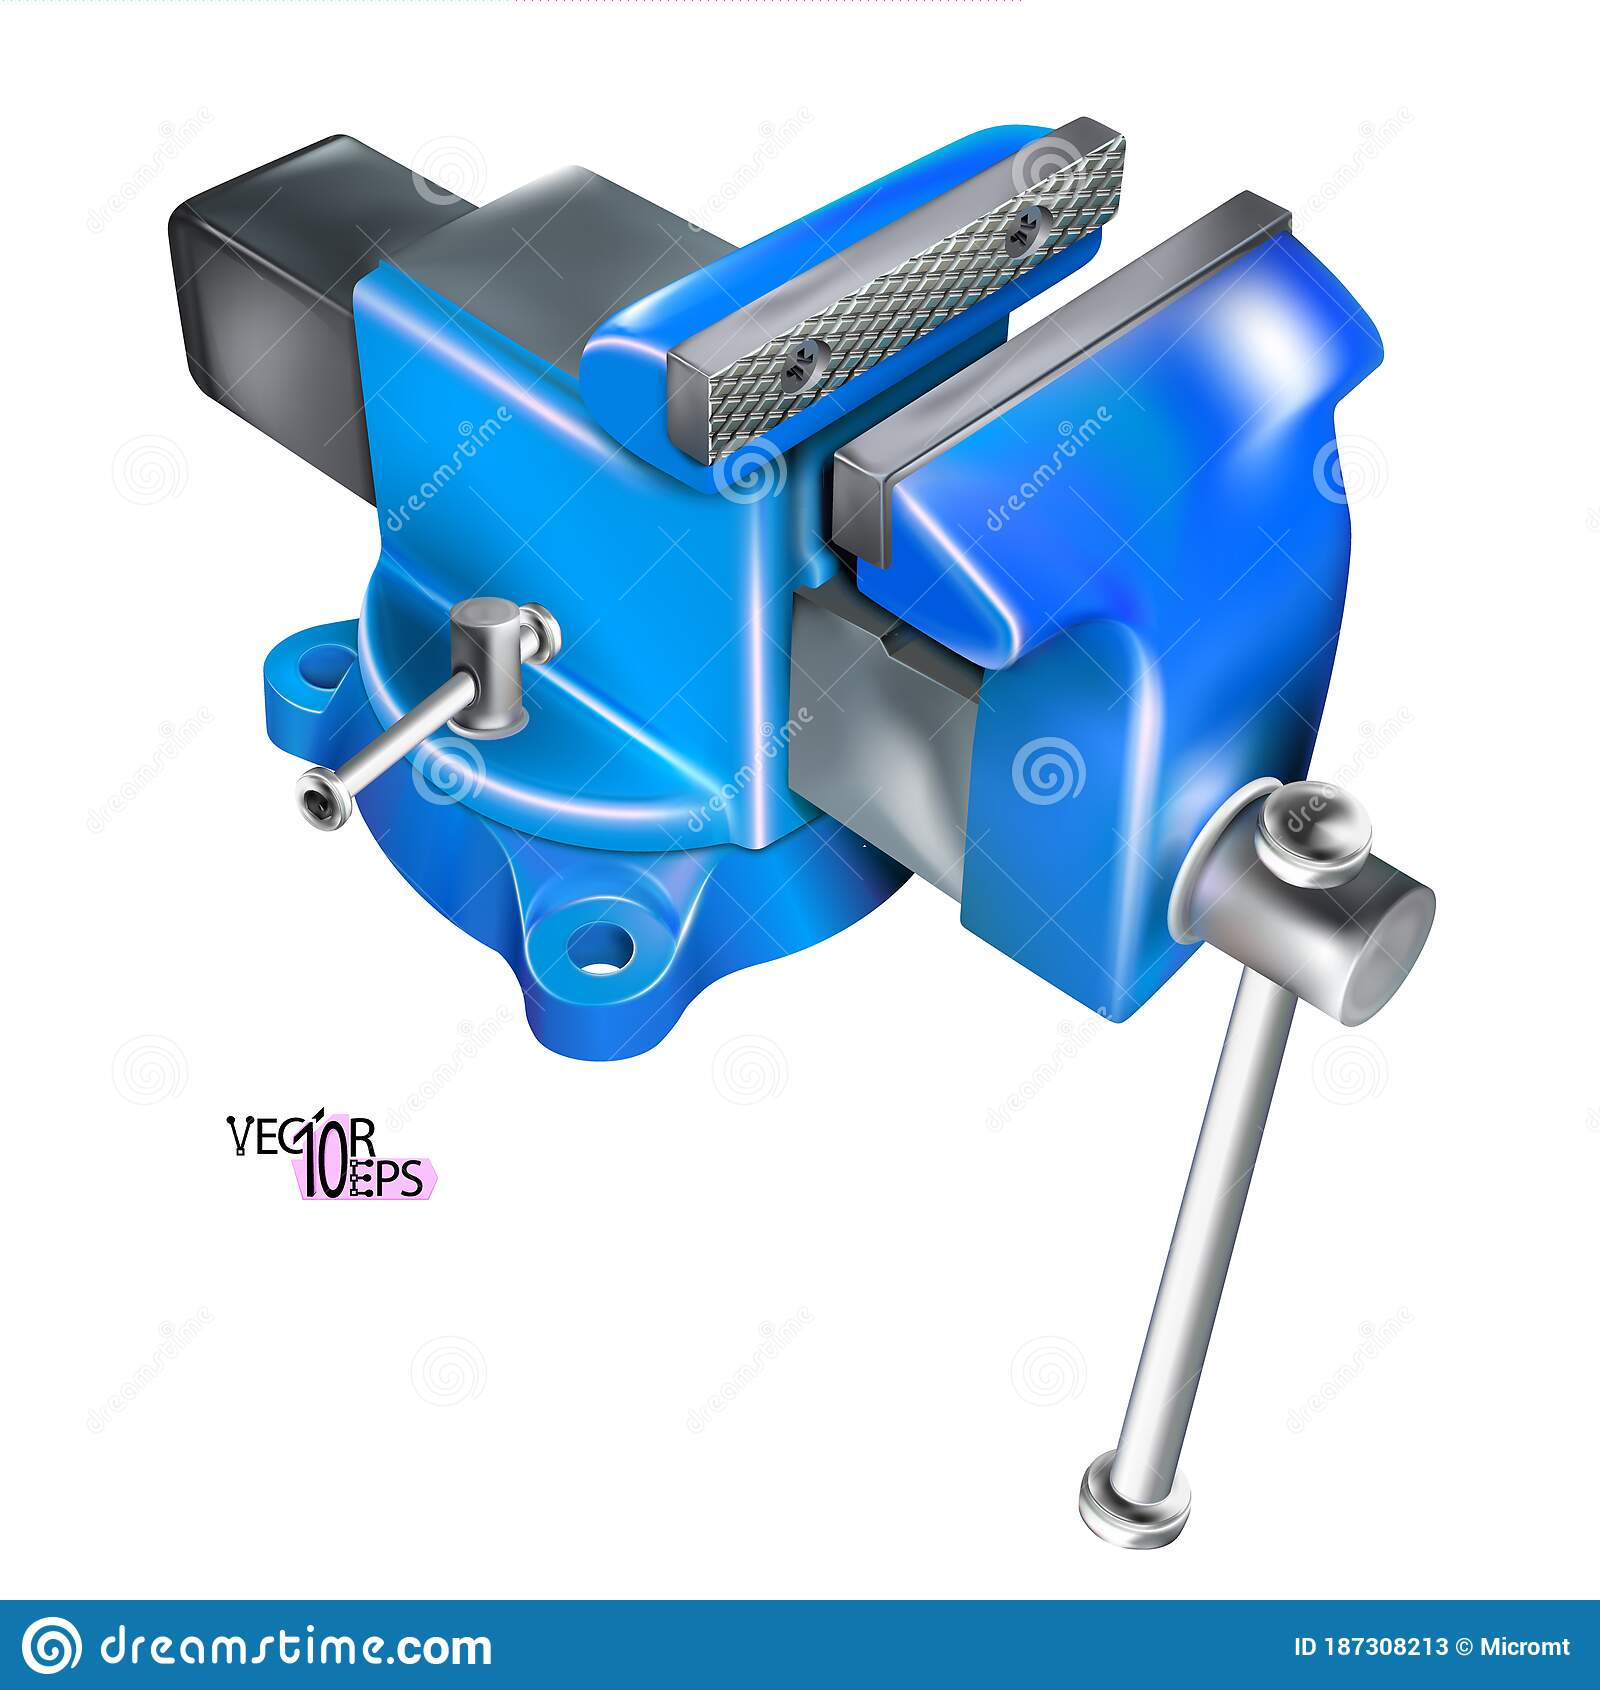 Realistic Heavy Duty Bench Vise On Swivel Base 3d Metal Blue Vice Metalwork Tool Isolated On White Background Vector Stock Vector Illustration Of Craft Locksmith 187308213